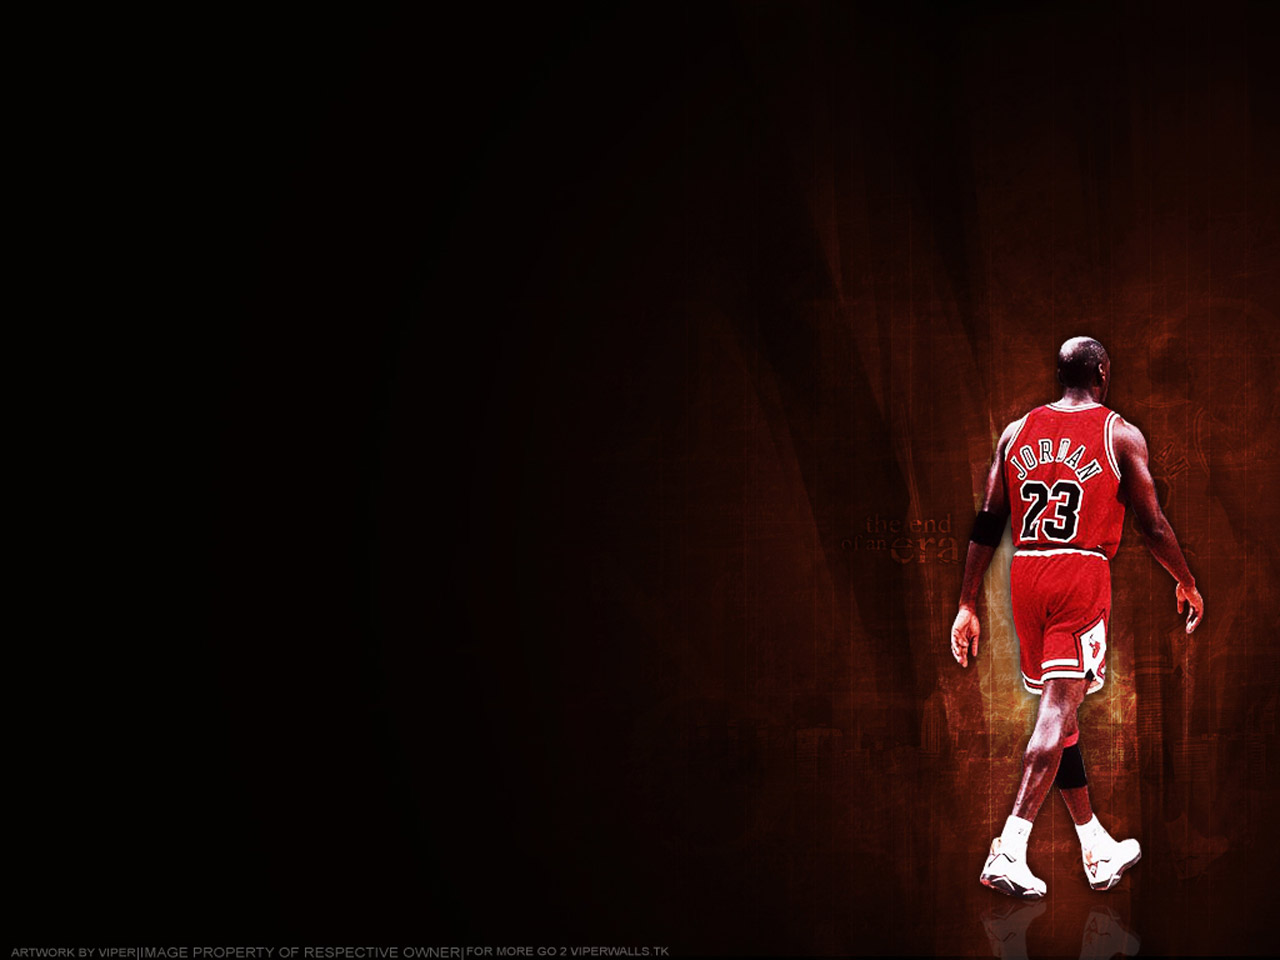 Pin free download michael jordan wallpaper 28957 hd wallpapers on - Michael Jordan Hd Wallpapers Michael Jordan Hd Wallpapers Michael